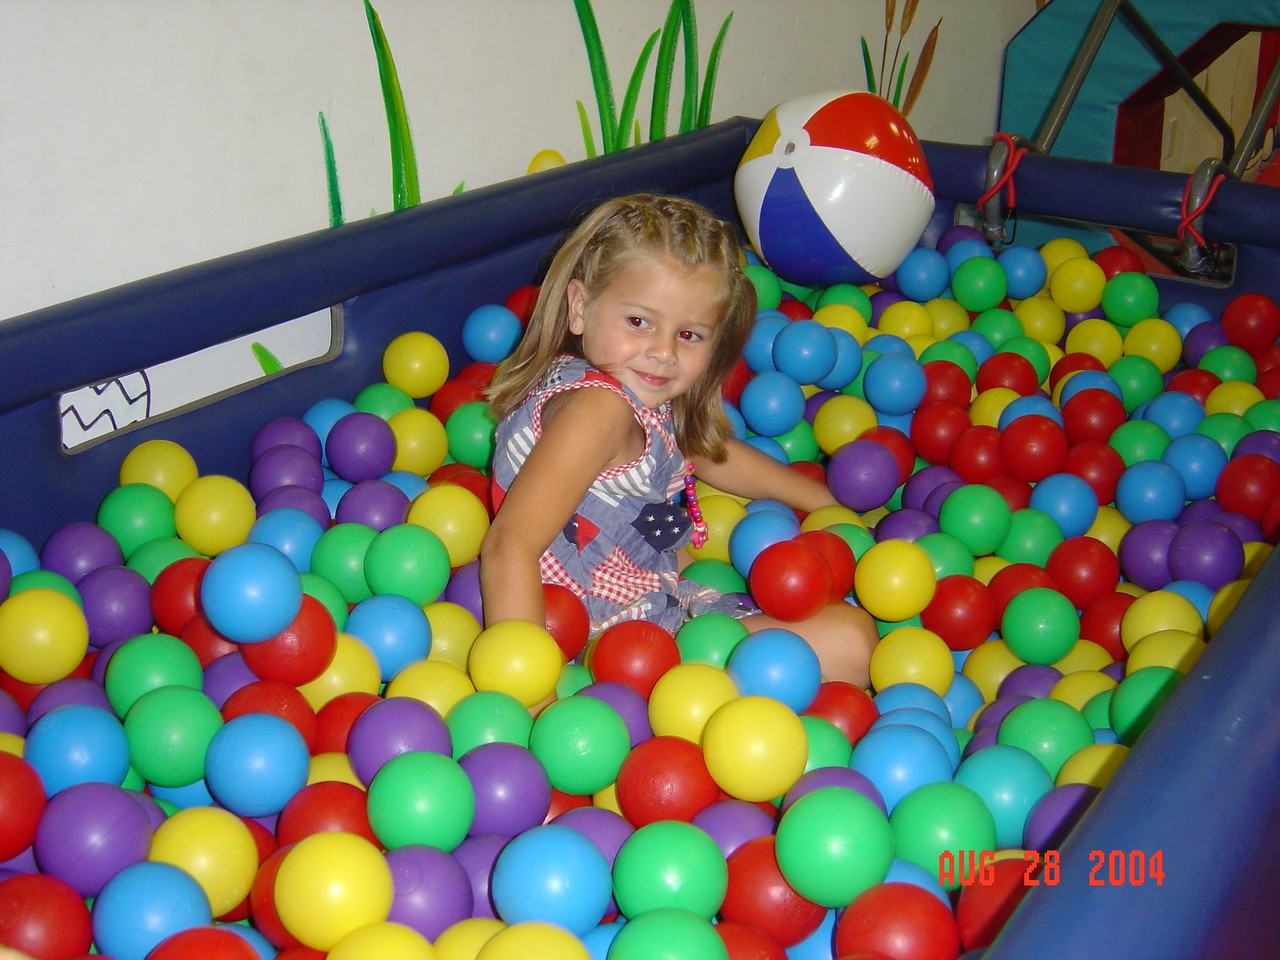 Natalie_in_the_ball_pit_at_her_party-08-28-04